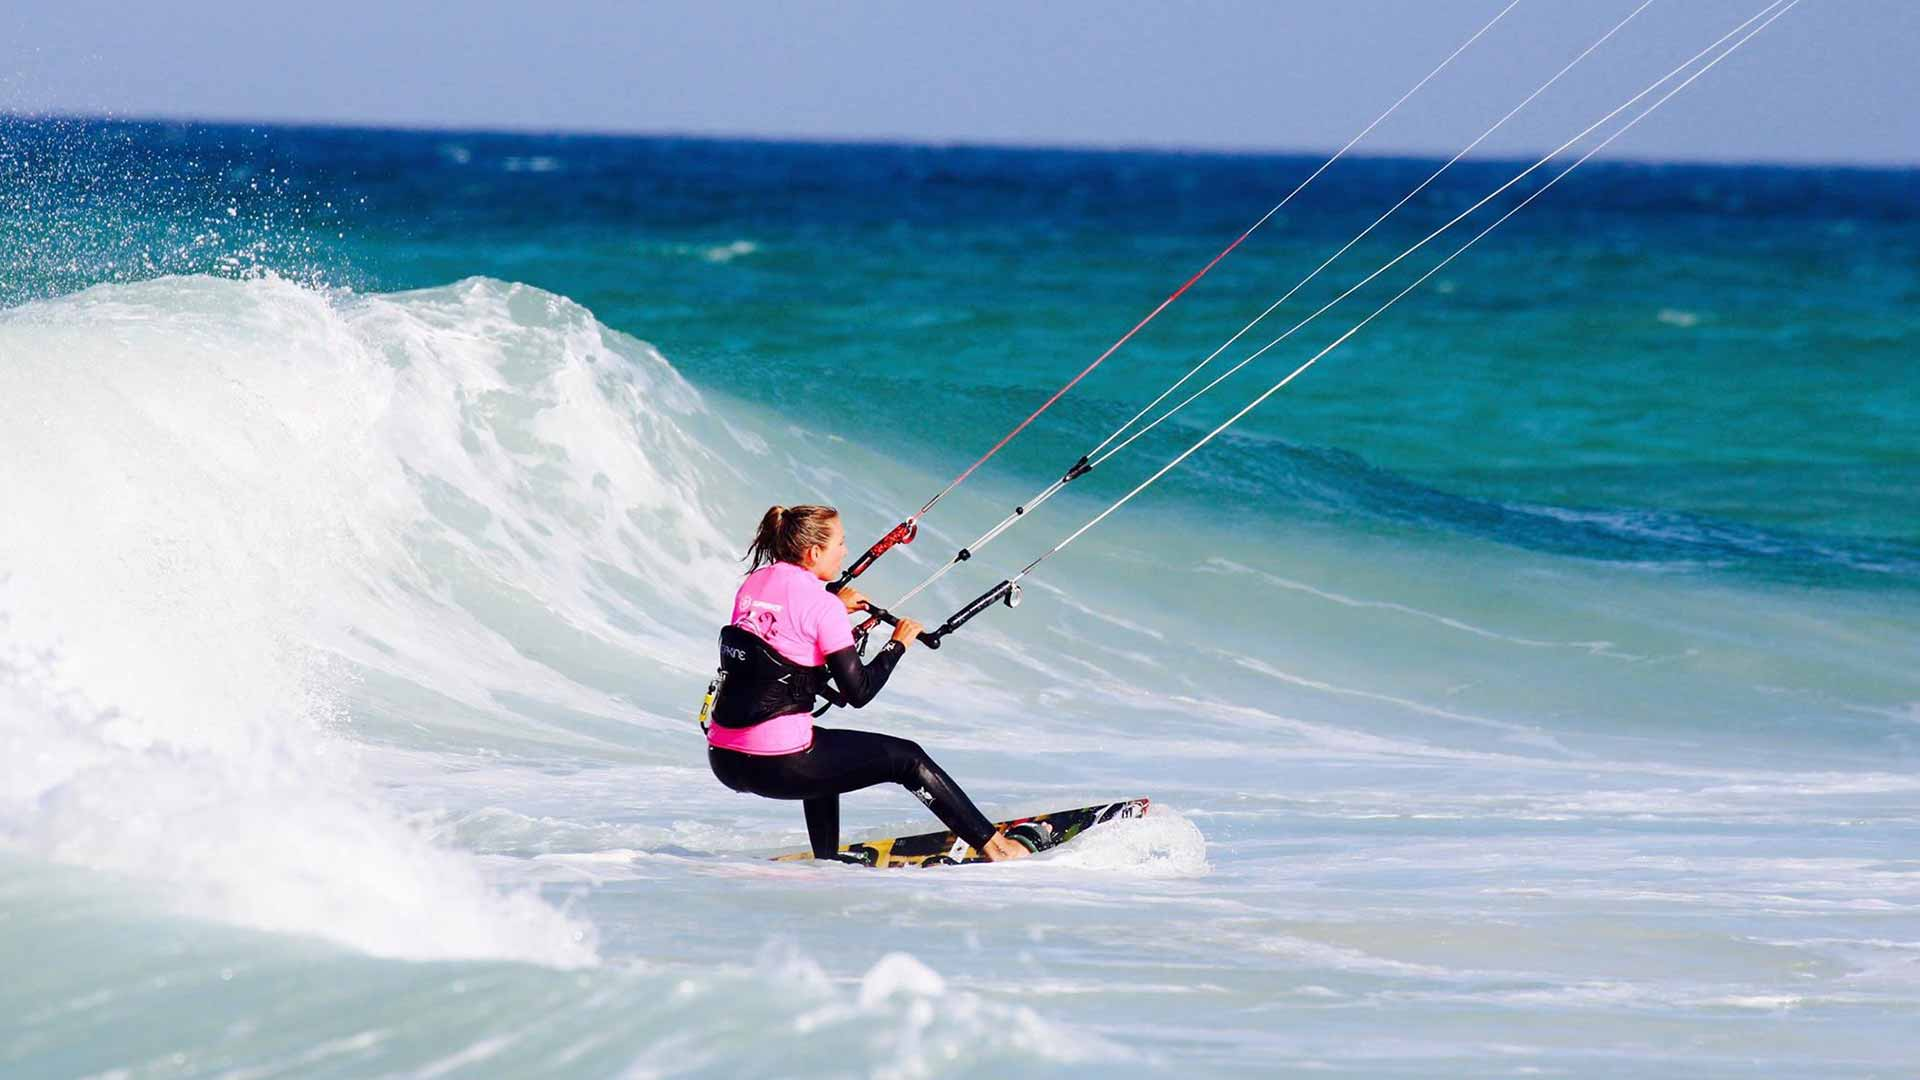 wave_kitesurfing_course_W1a